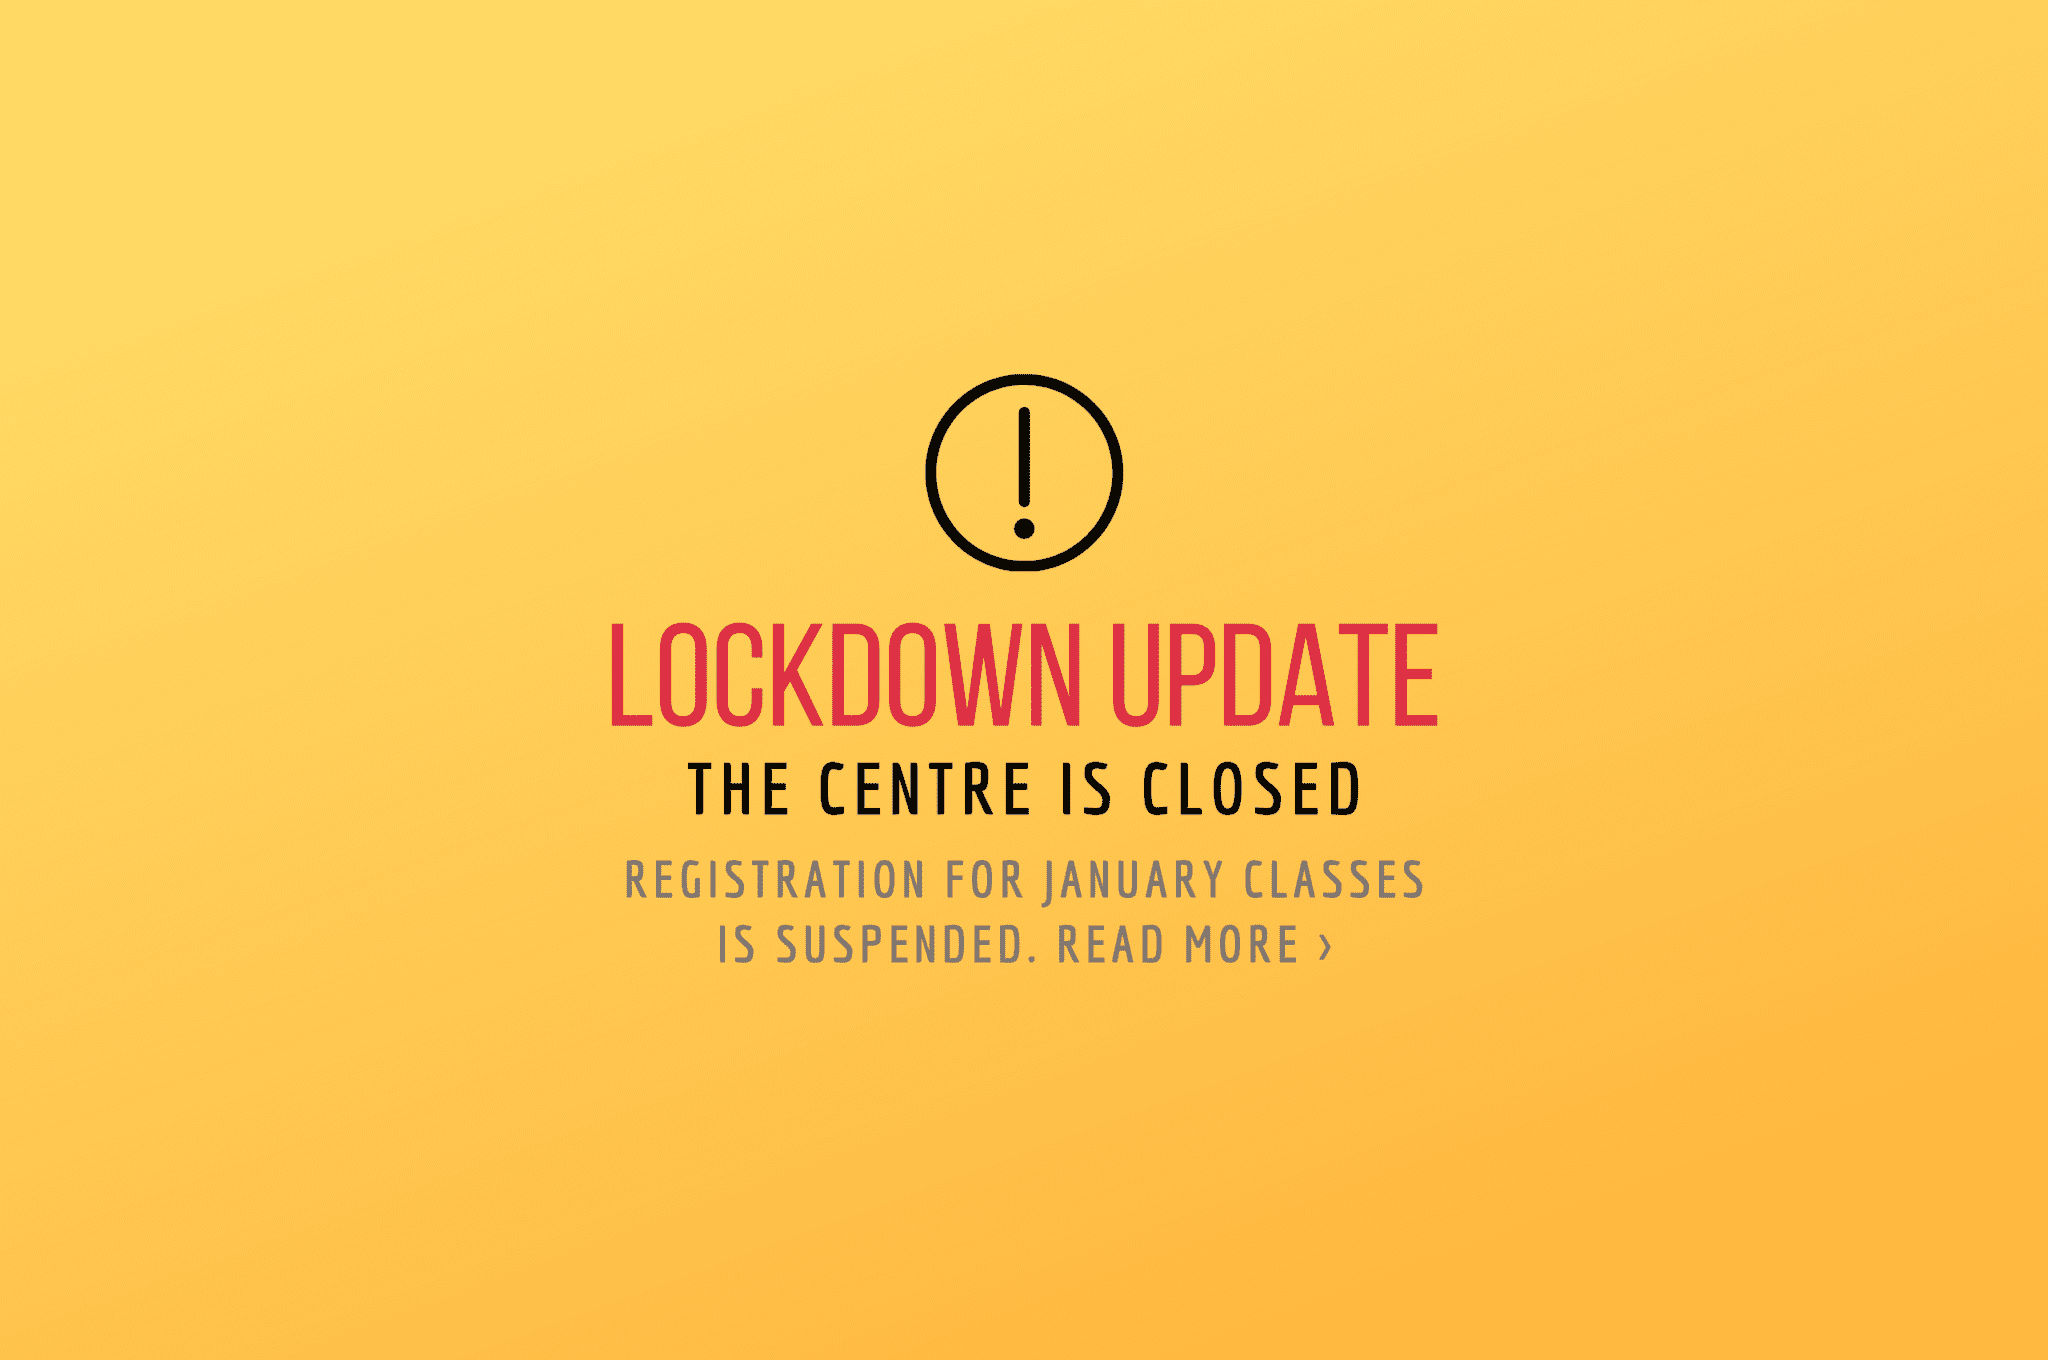 lockdown update: the centre is closed; registration for January classes is suspended.